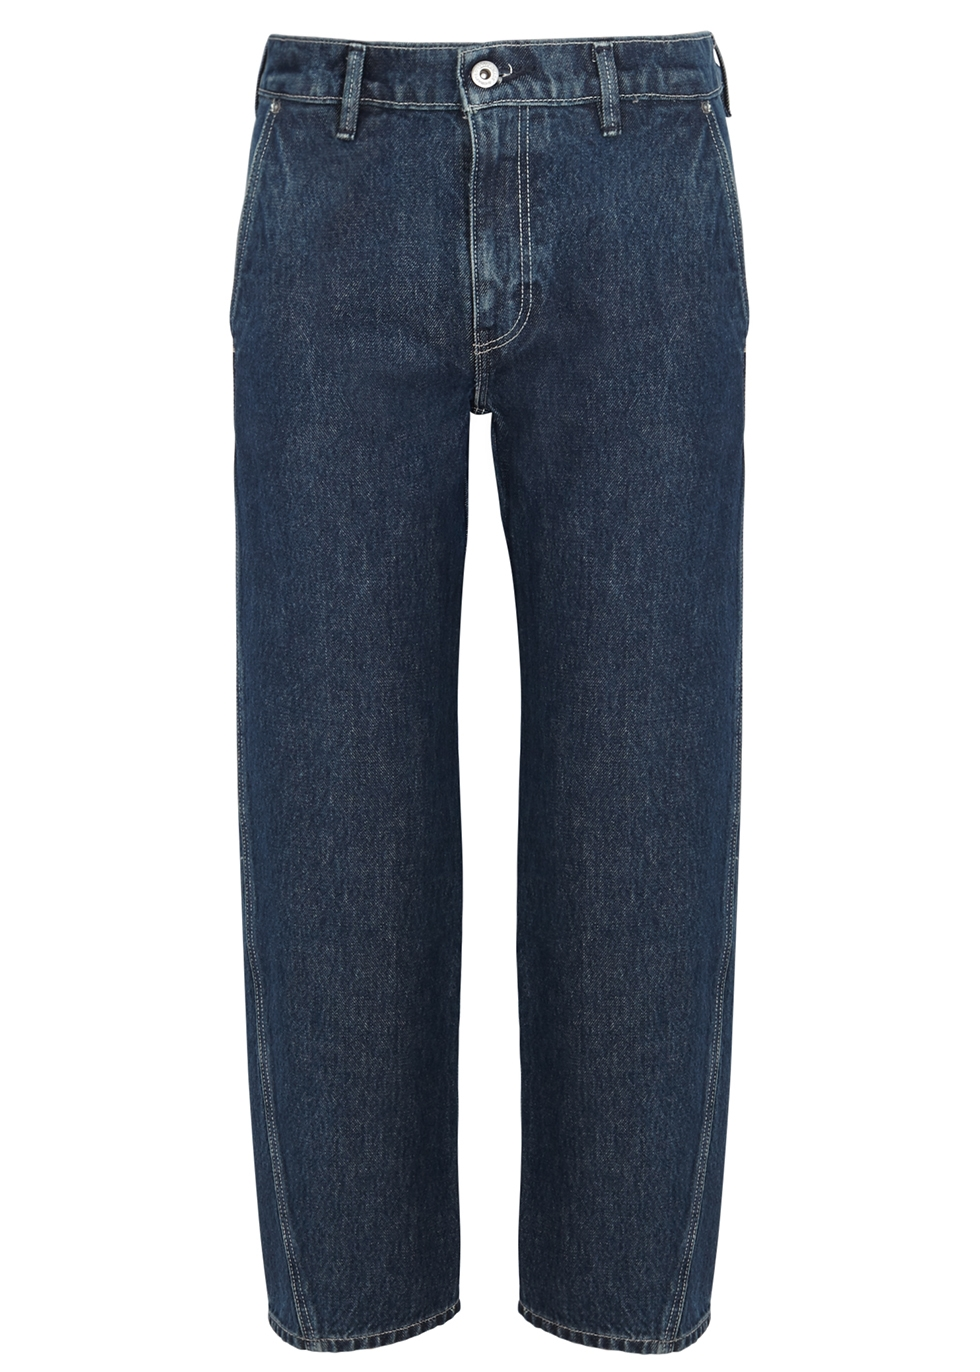 Field indigo straight-leg jeans - Levi's Made & Crafted